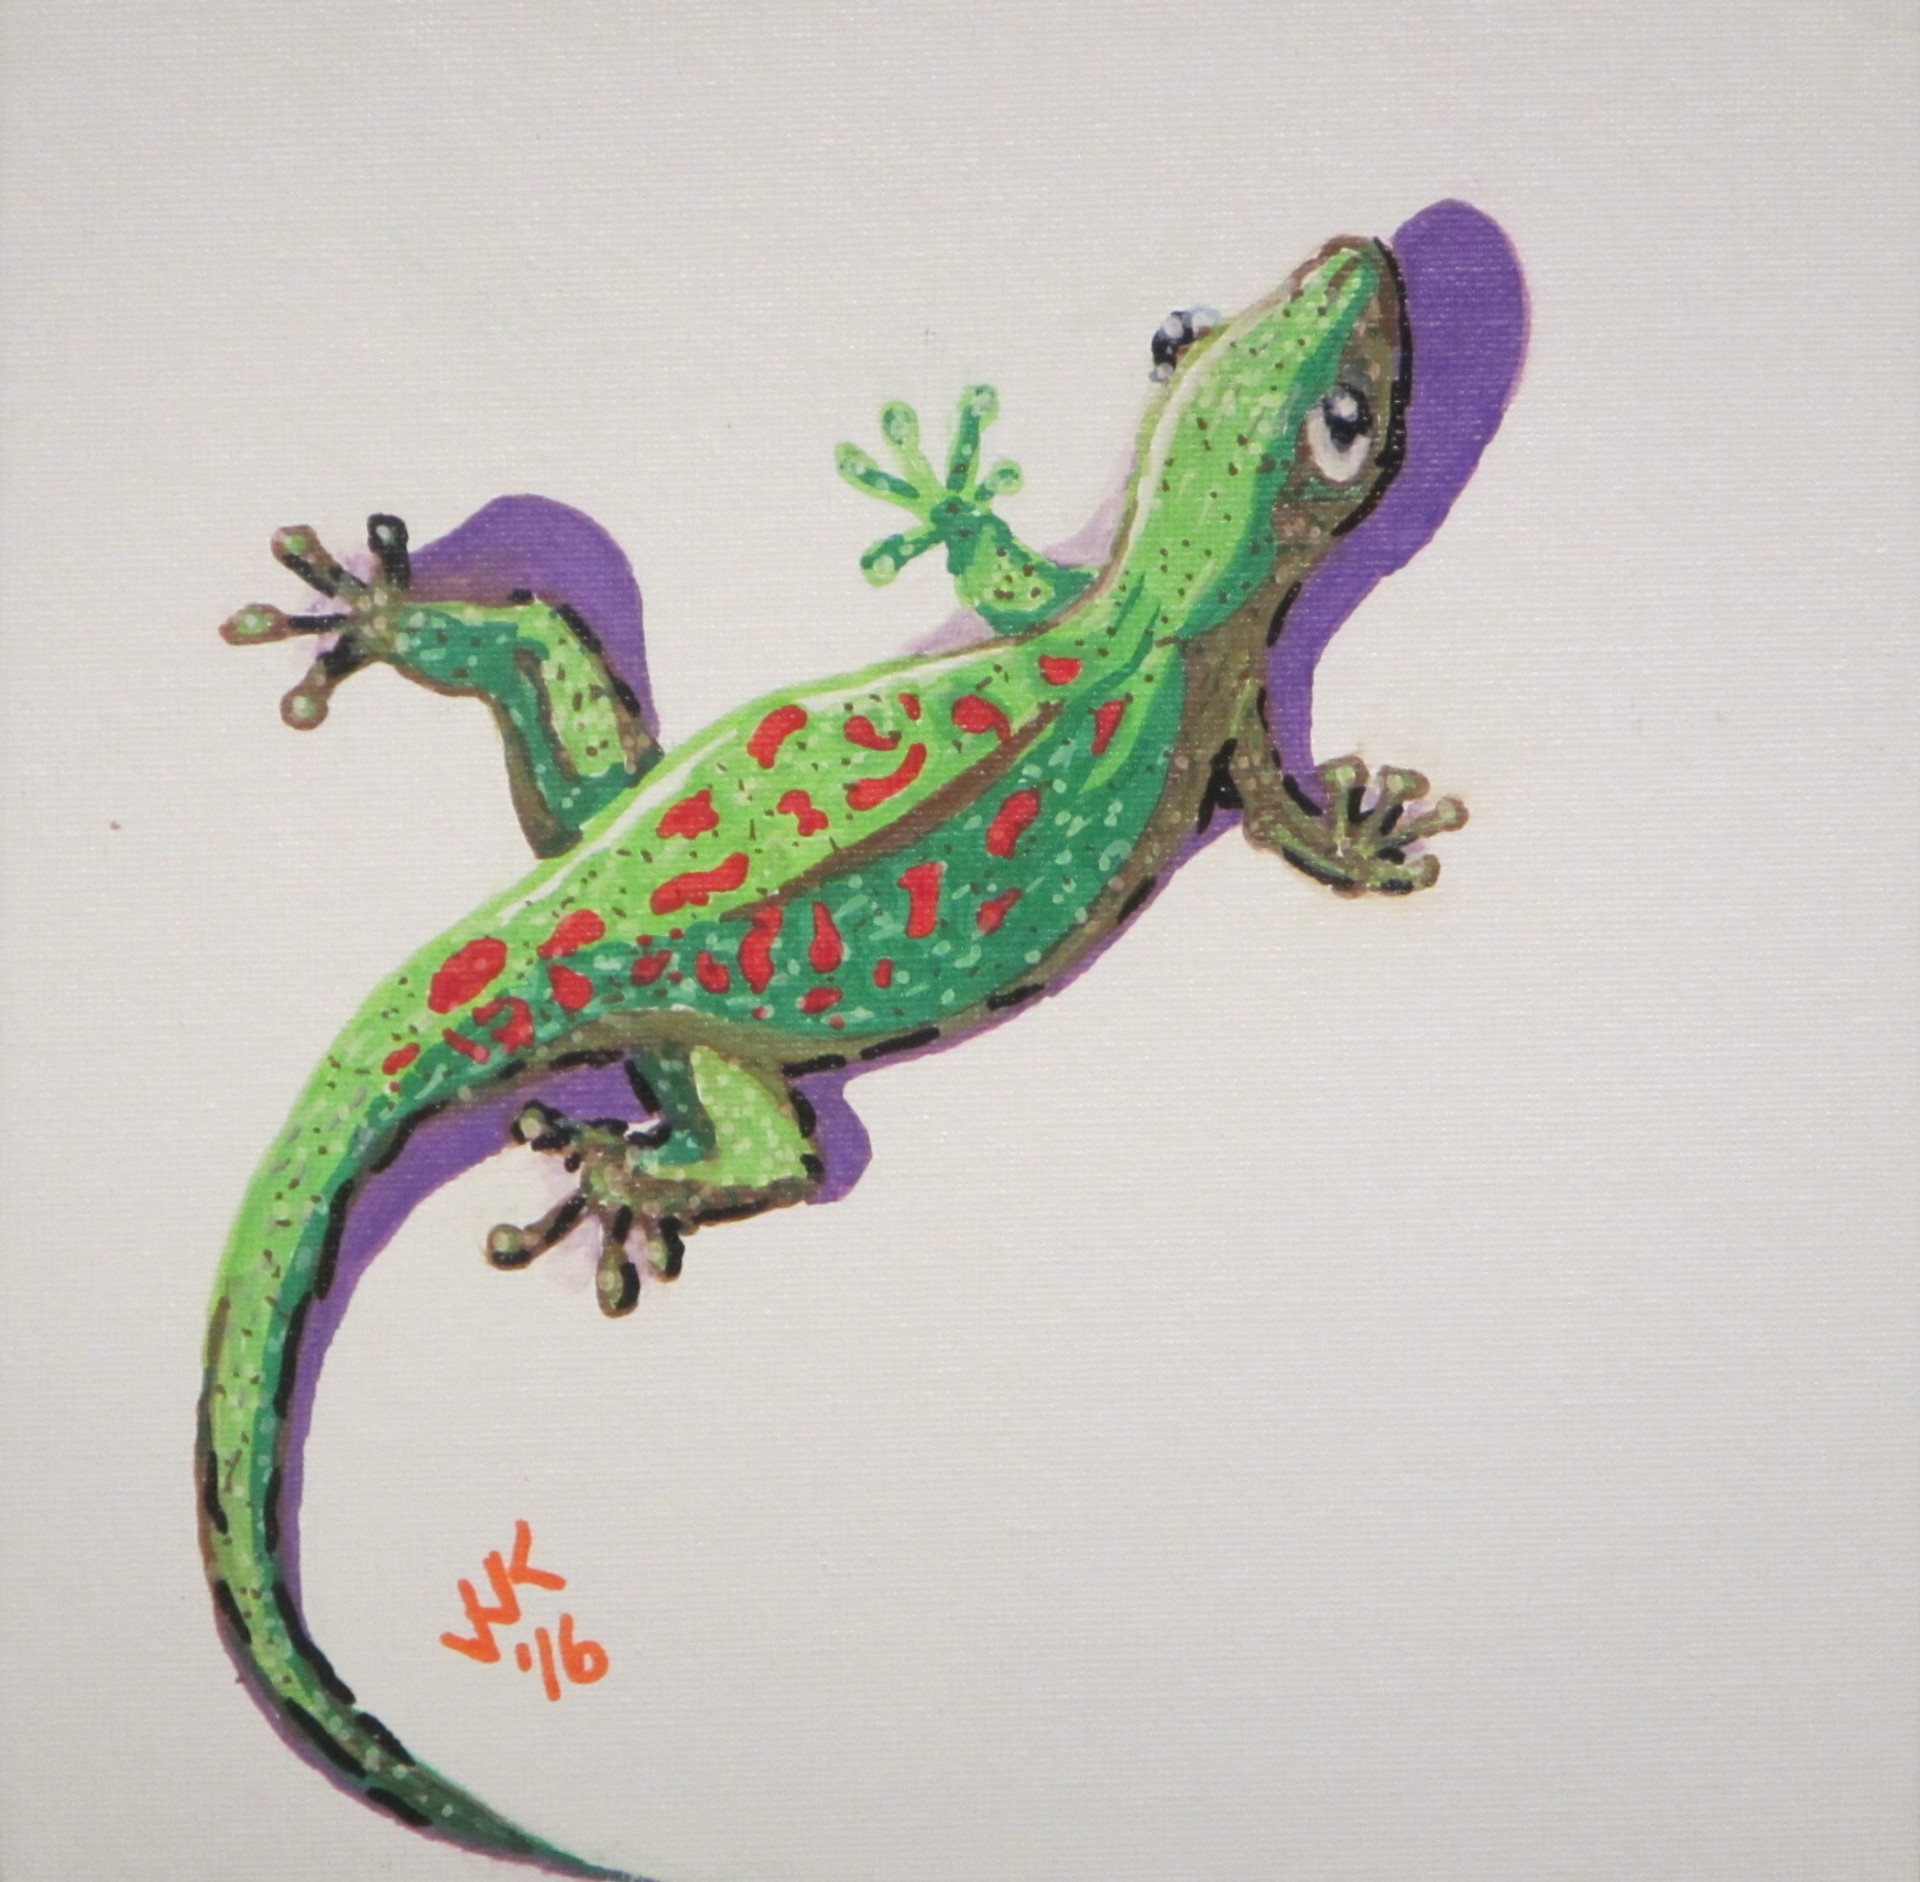 A gecko on the wall.